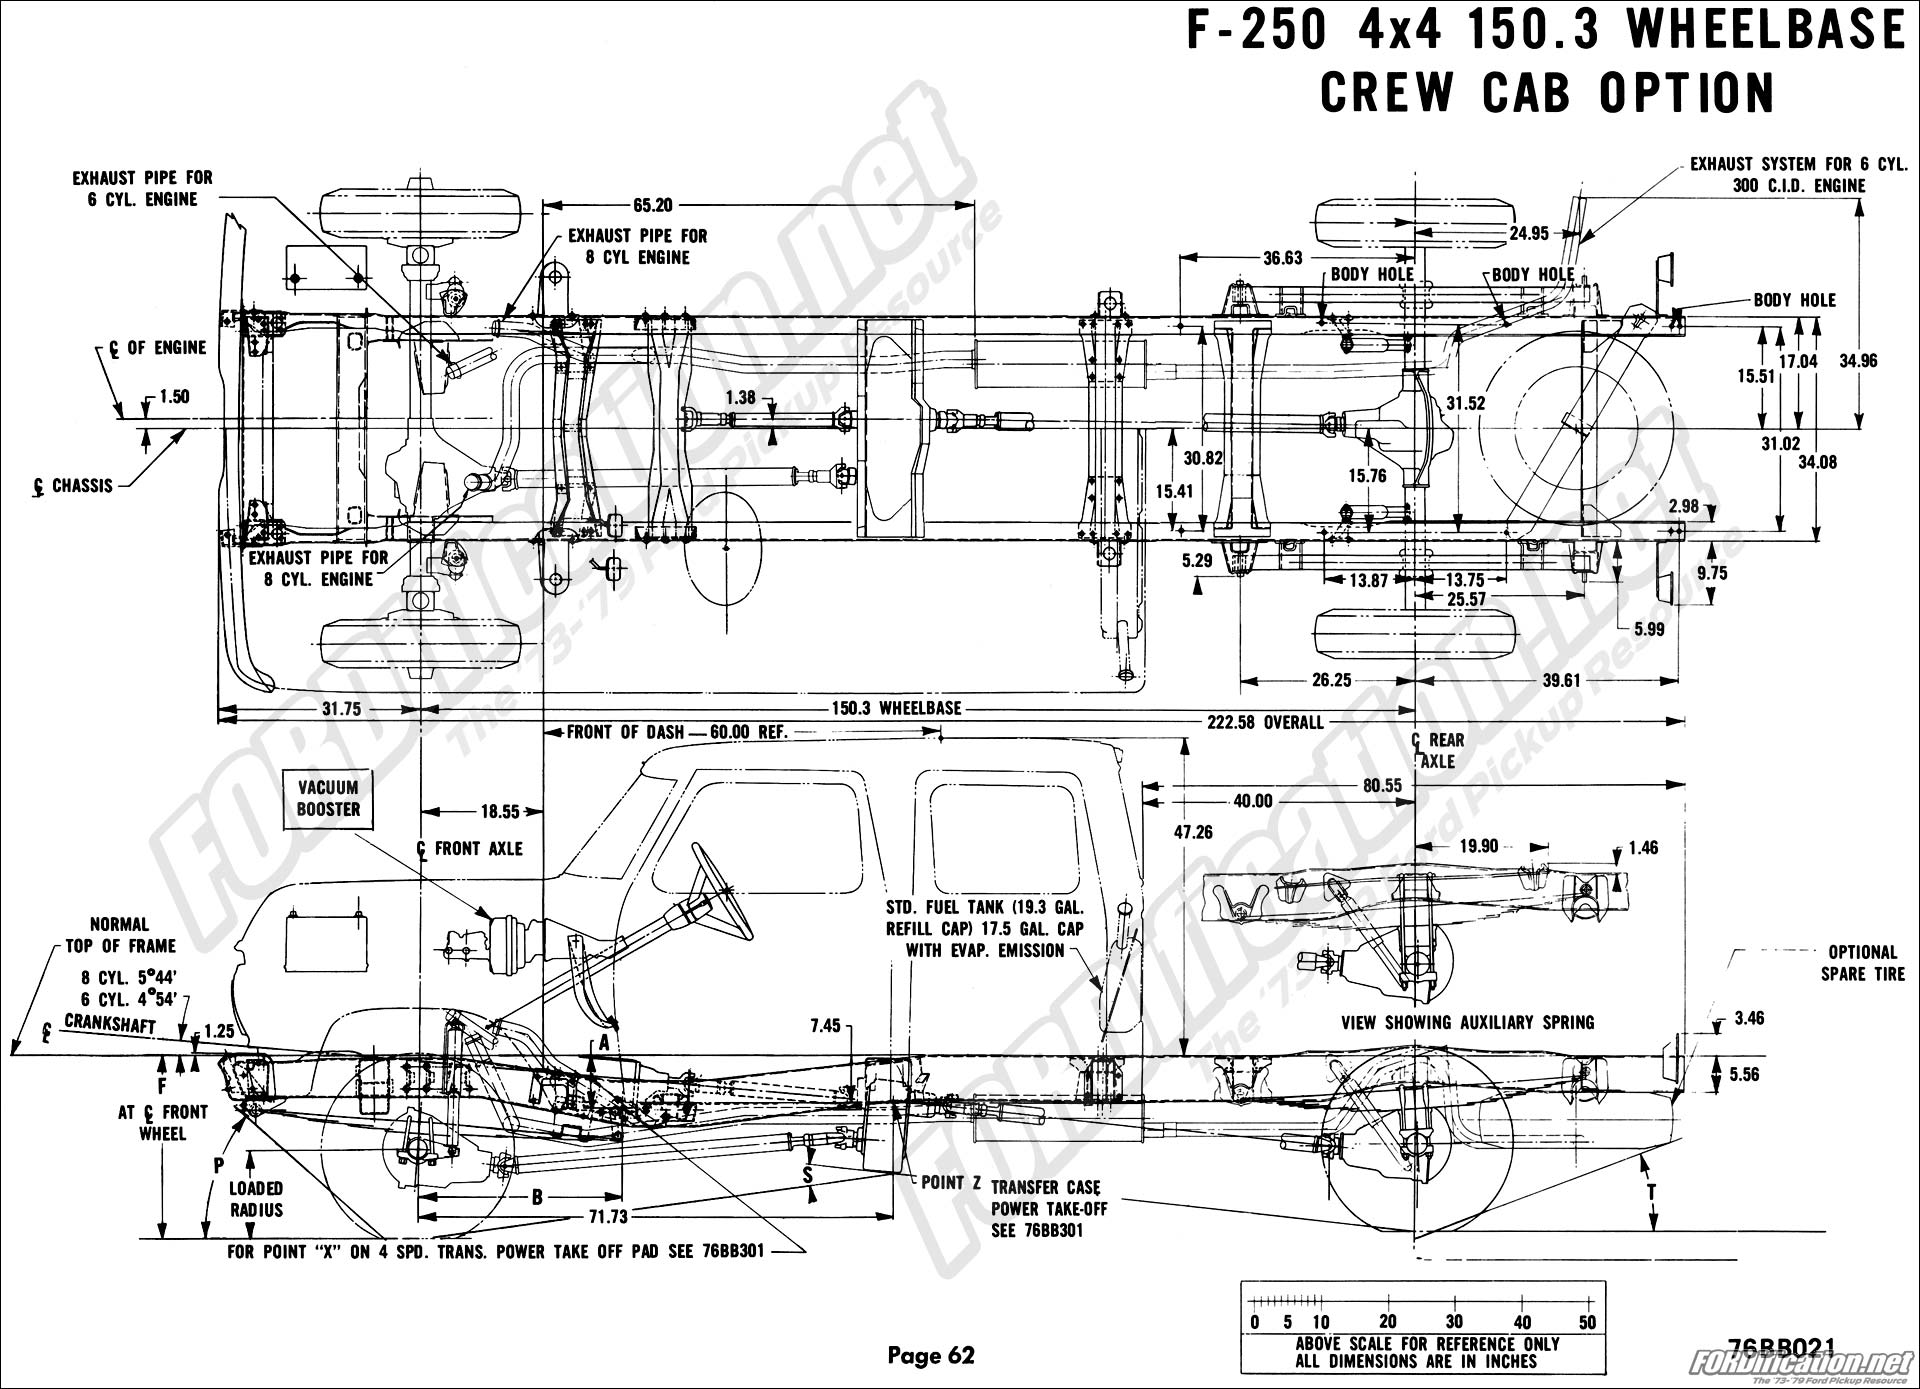 1995 Ford F250 Ac Wiring Diagram Schematic 2019 Explorer Electrical Simple Guide About Rh Bluecrm Co